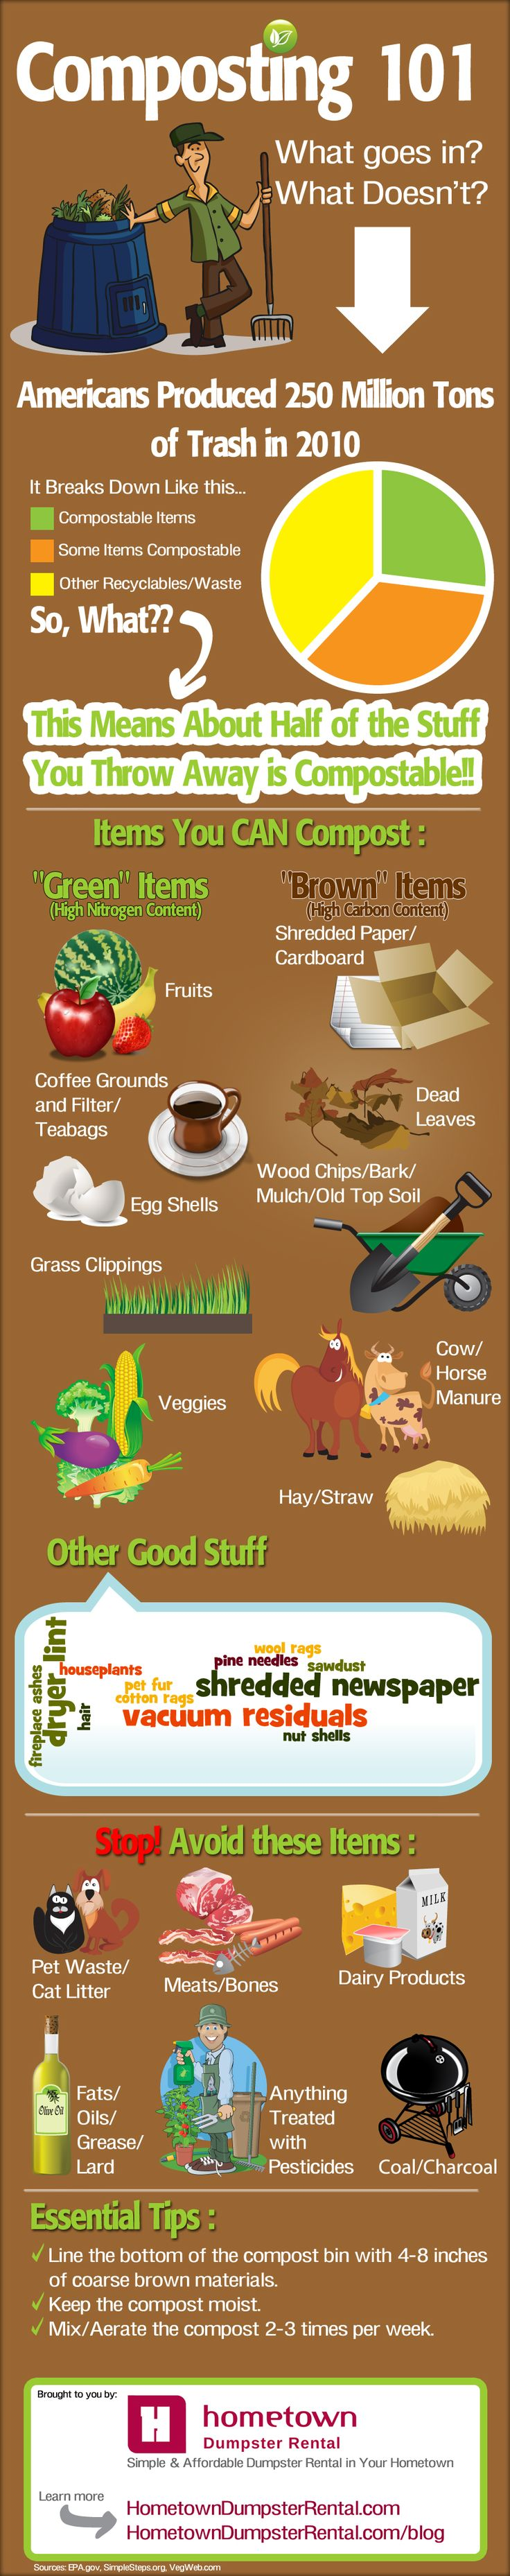 Composting 101 [Infographic] About half the stuff you throw away is compostable! Here's what can and can't go in the pile.